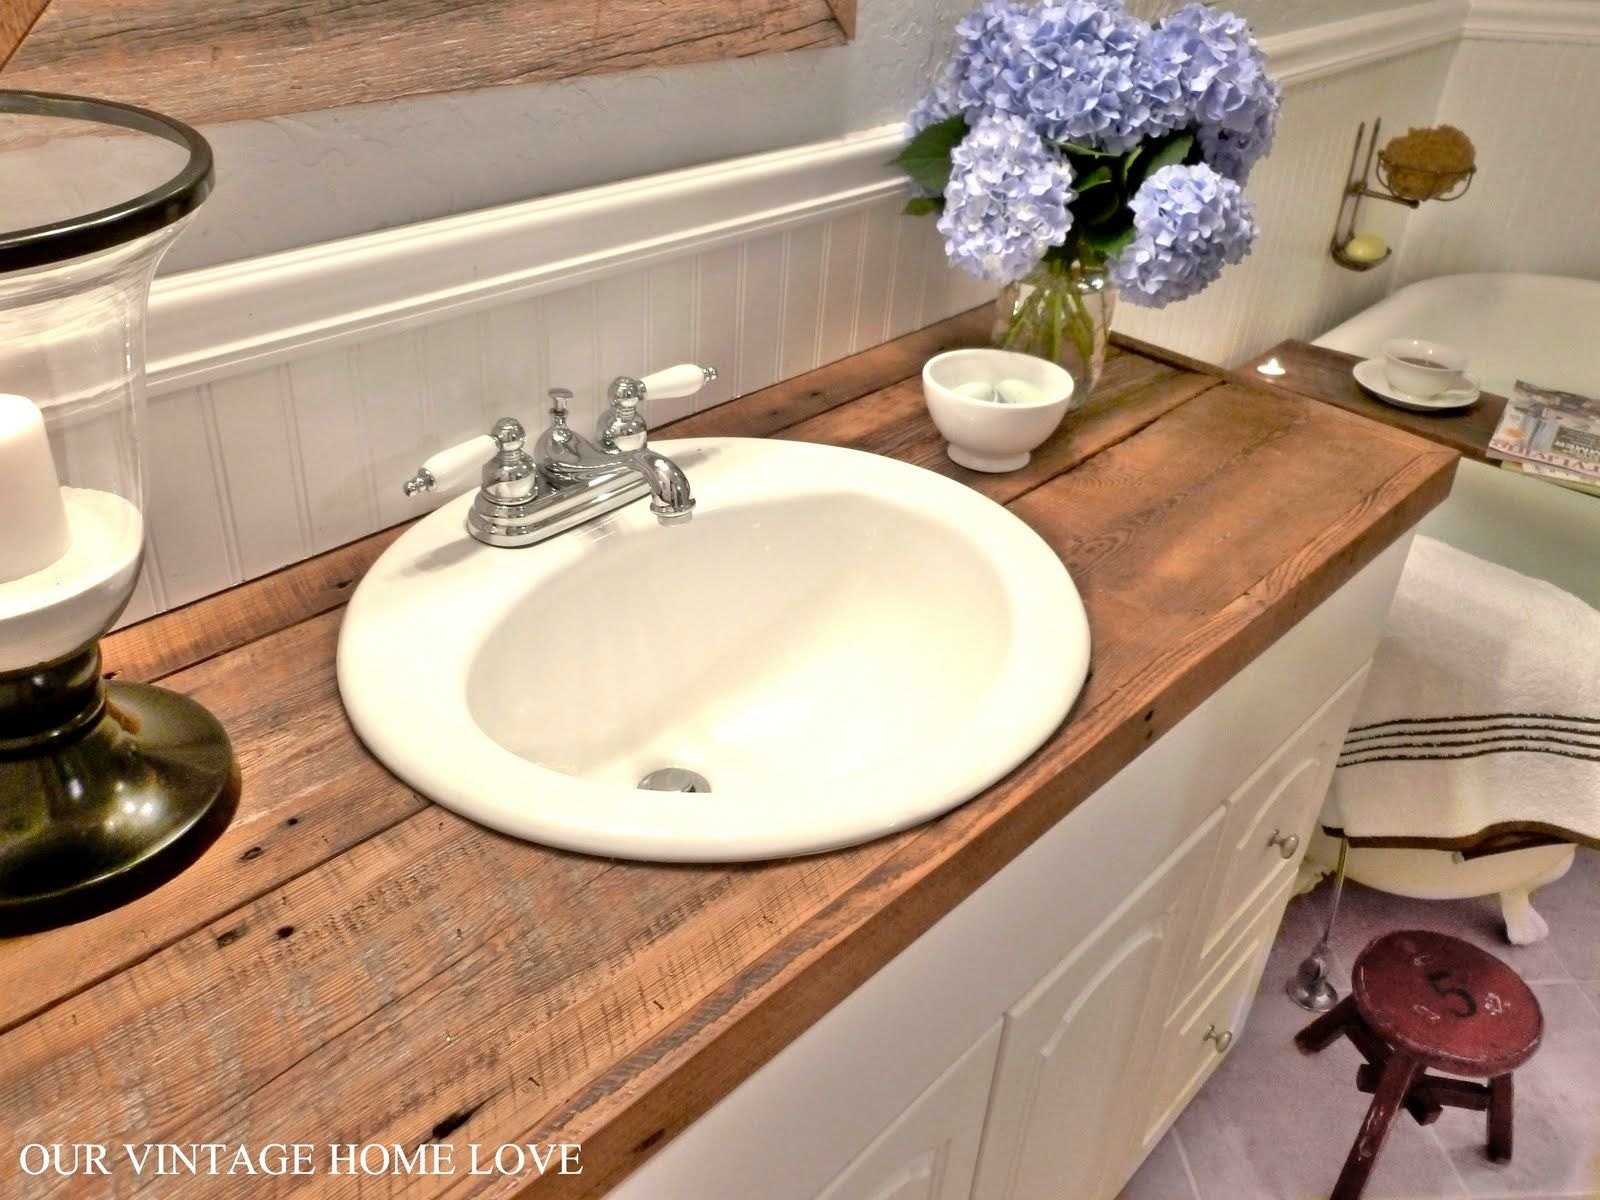 1000 images about for the home on pinterest barn wood old barn wood and reclaimed wood walls bathroom vanity barnwood mirror oyster pendant lights